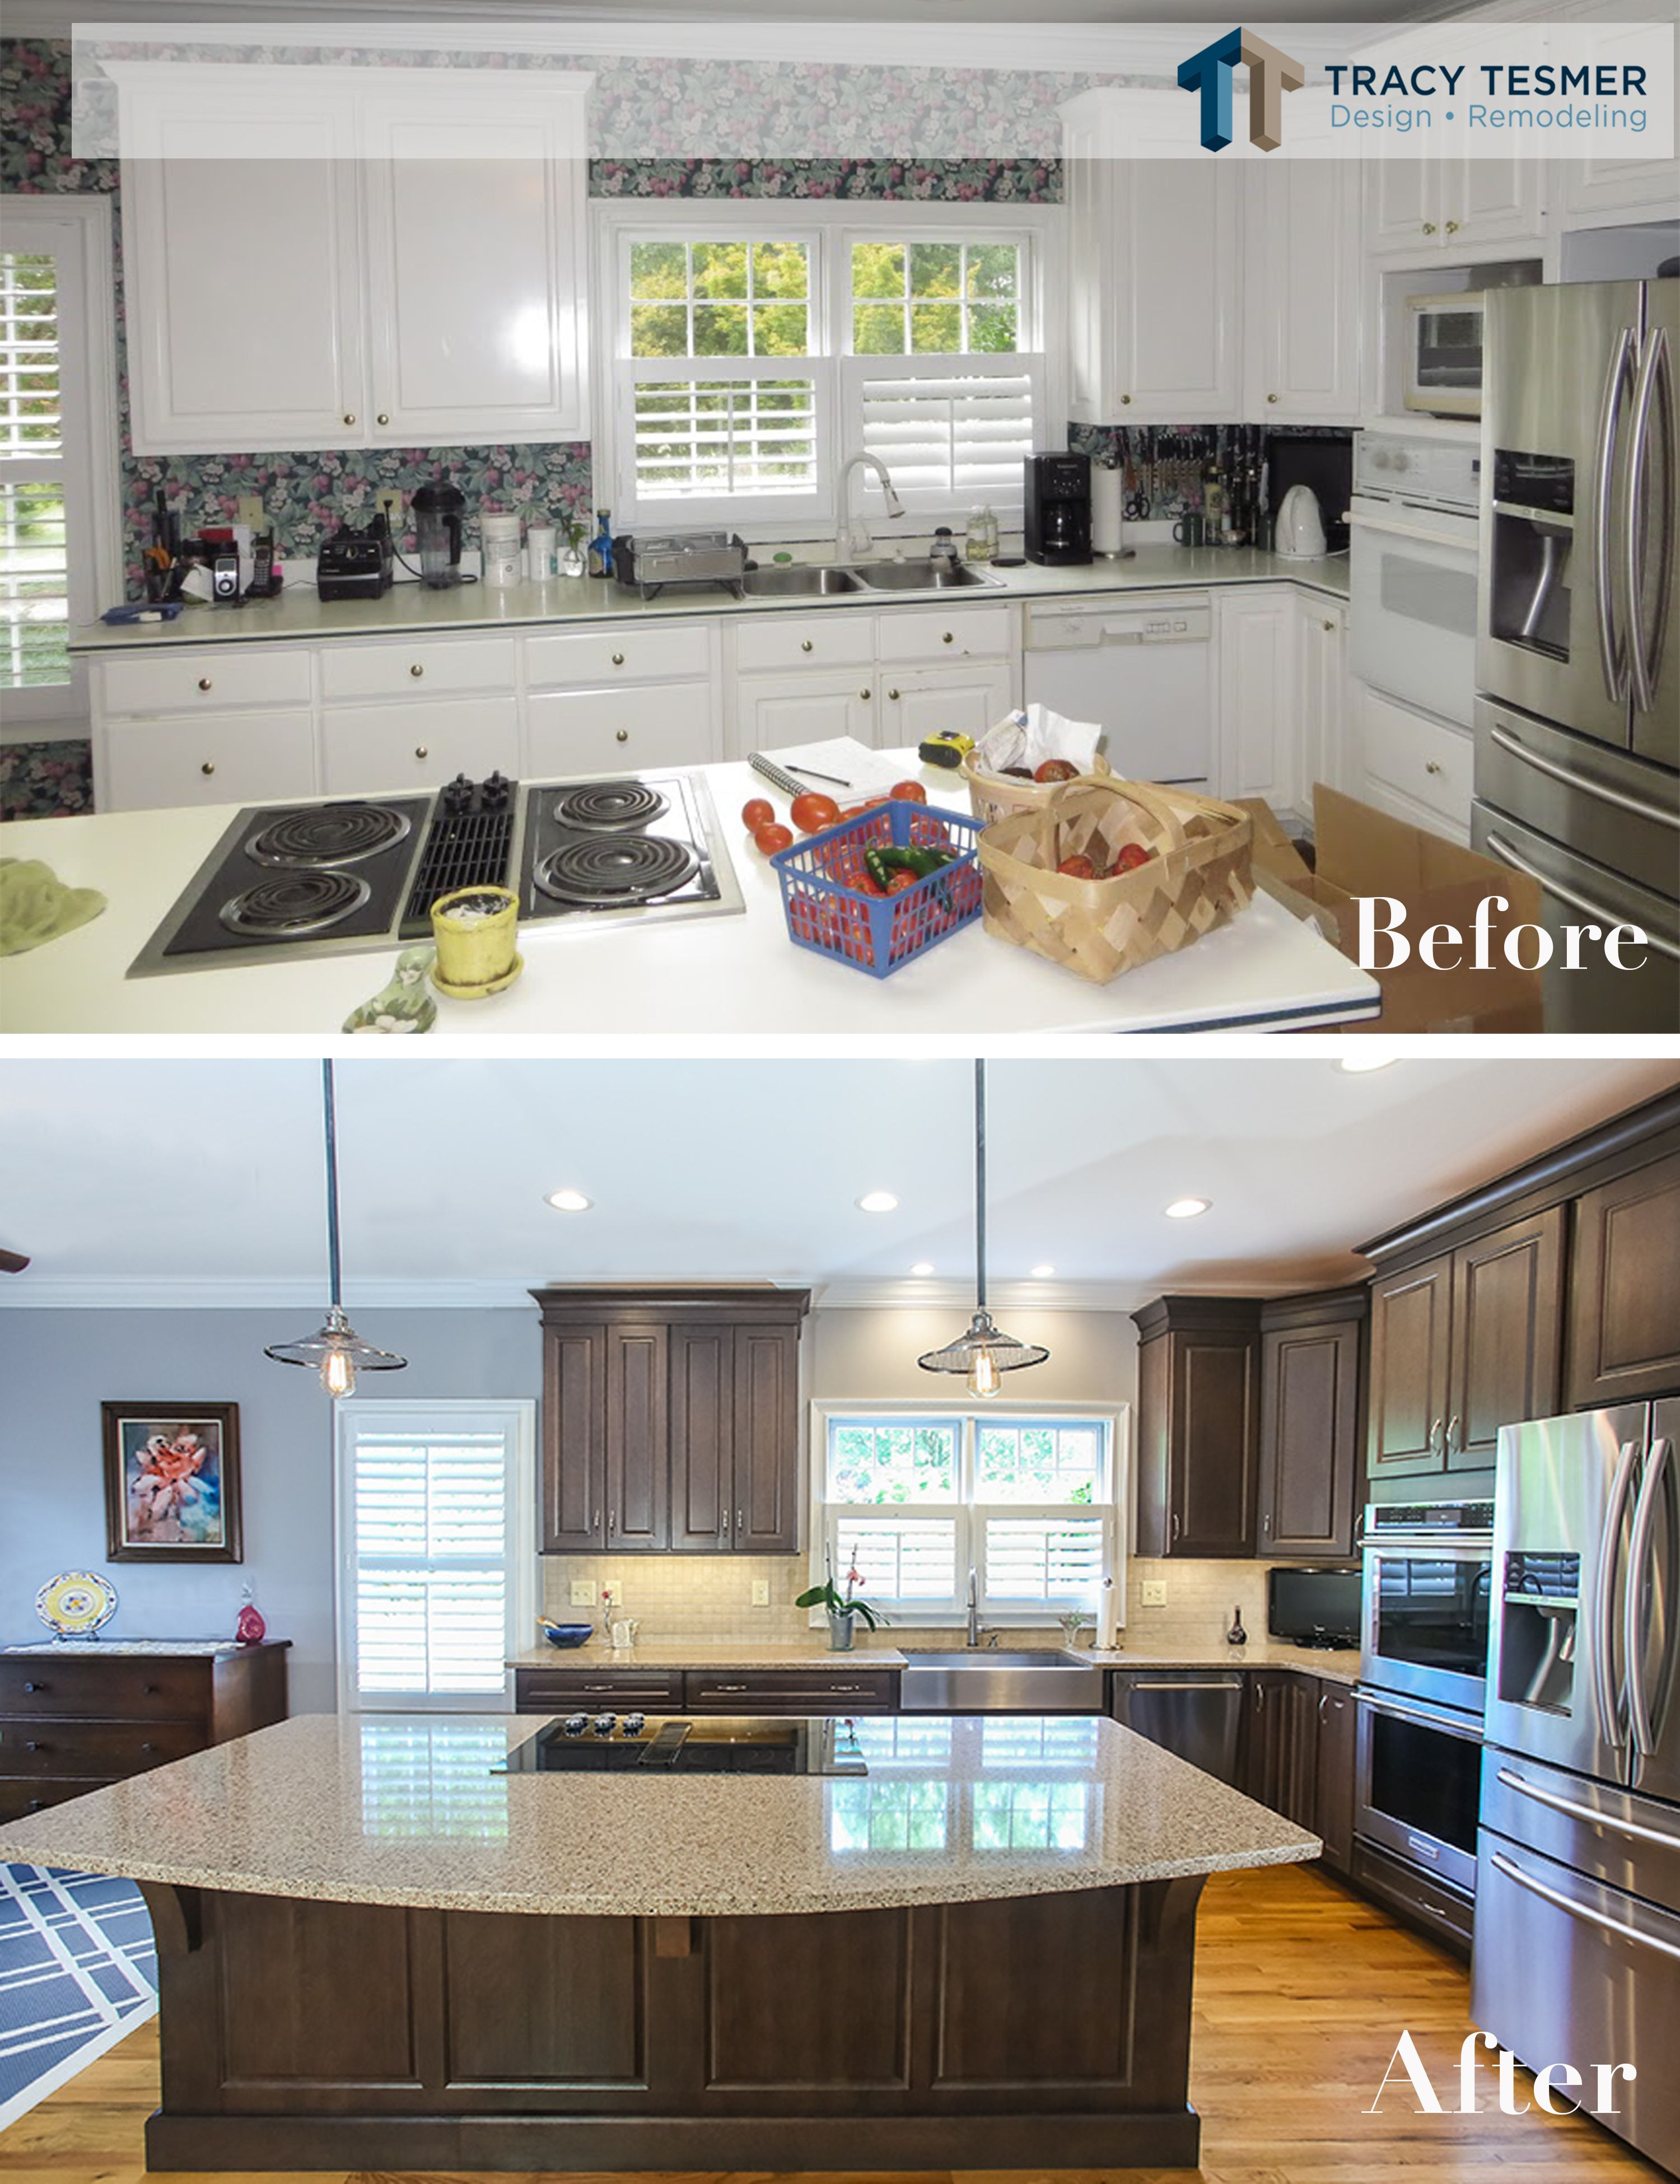 Nothing Like A Good Kitchen Update Here We Got Rid Of The 90 S Wallpaper And White Cabinets And Bro Home Remodeling Contractors Kitchen Design Home Remodeling